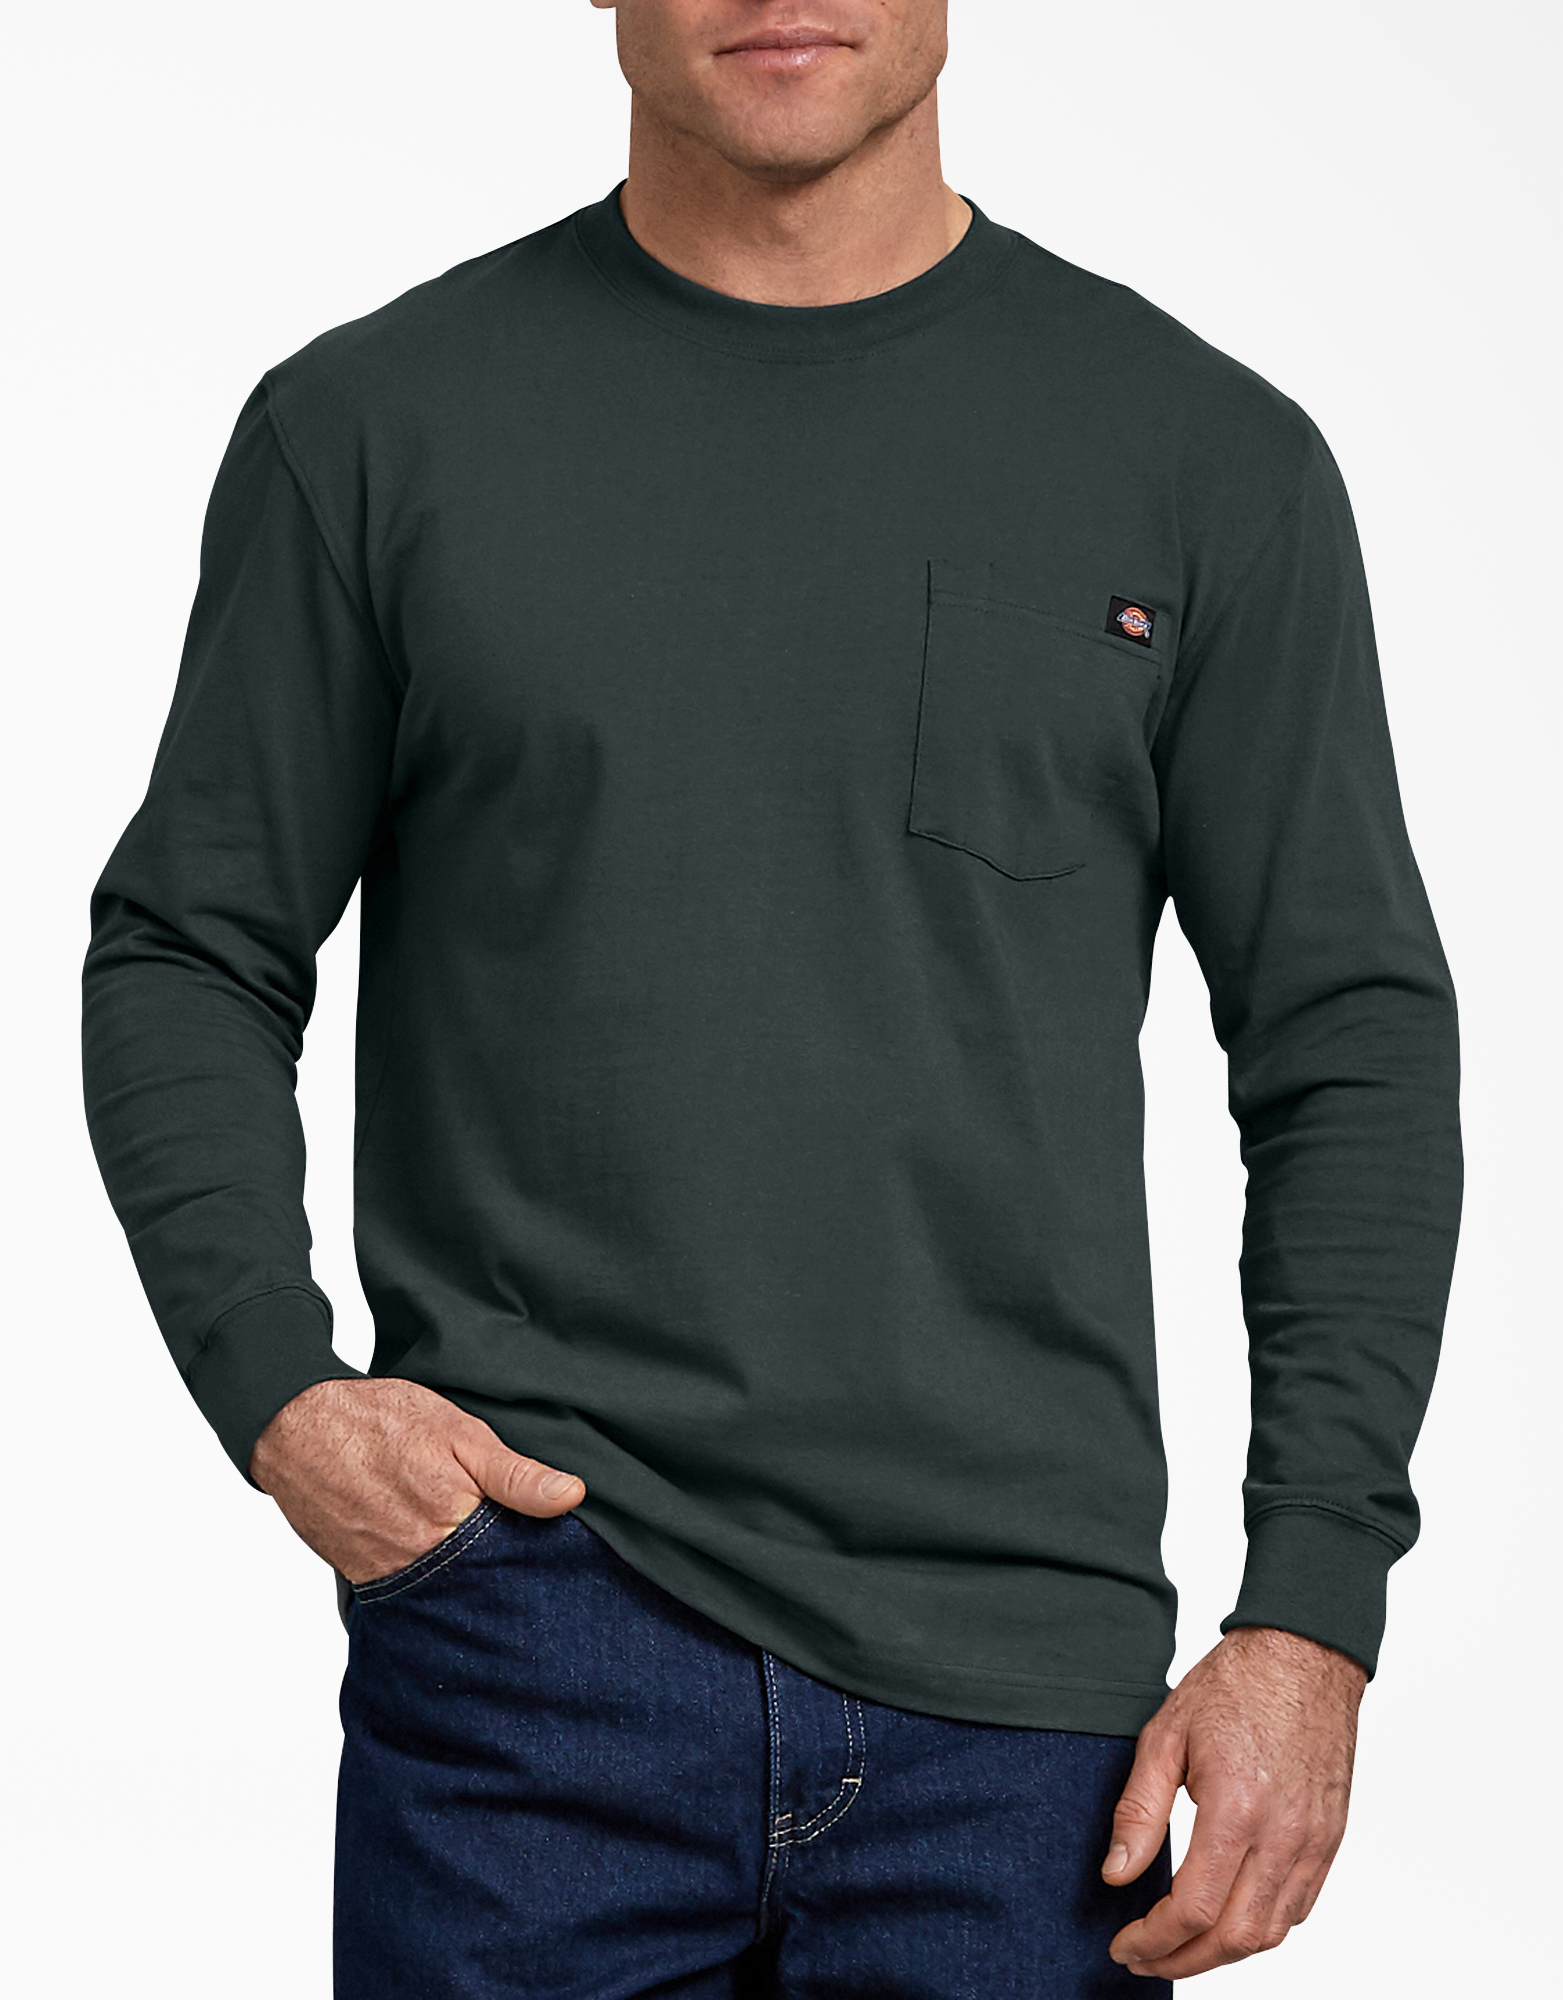 Long Sleeve Heavyweight Crew Neck T-Shirt - Hunter Green (GH)